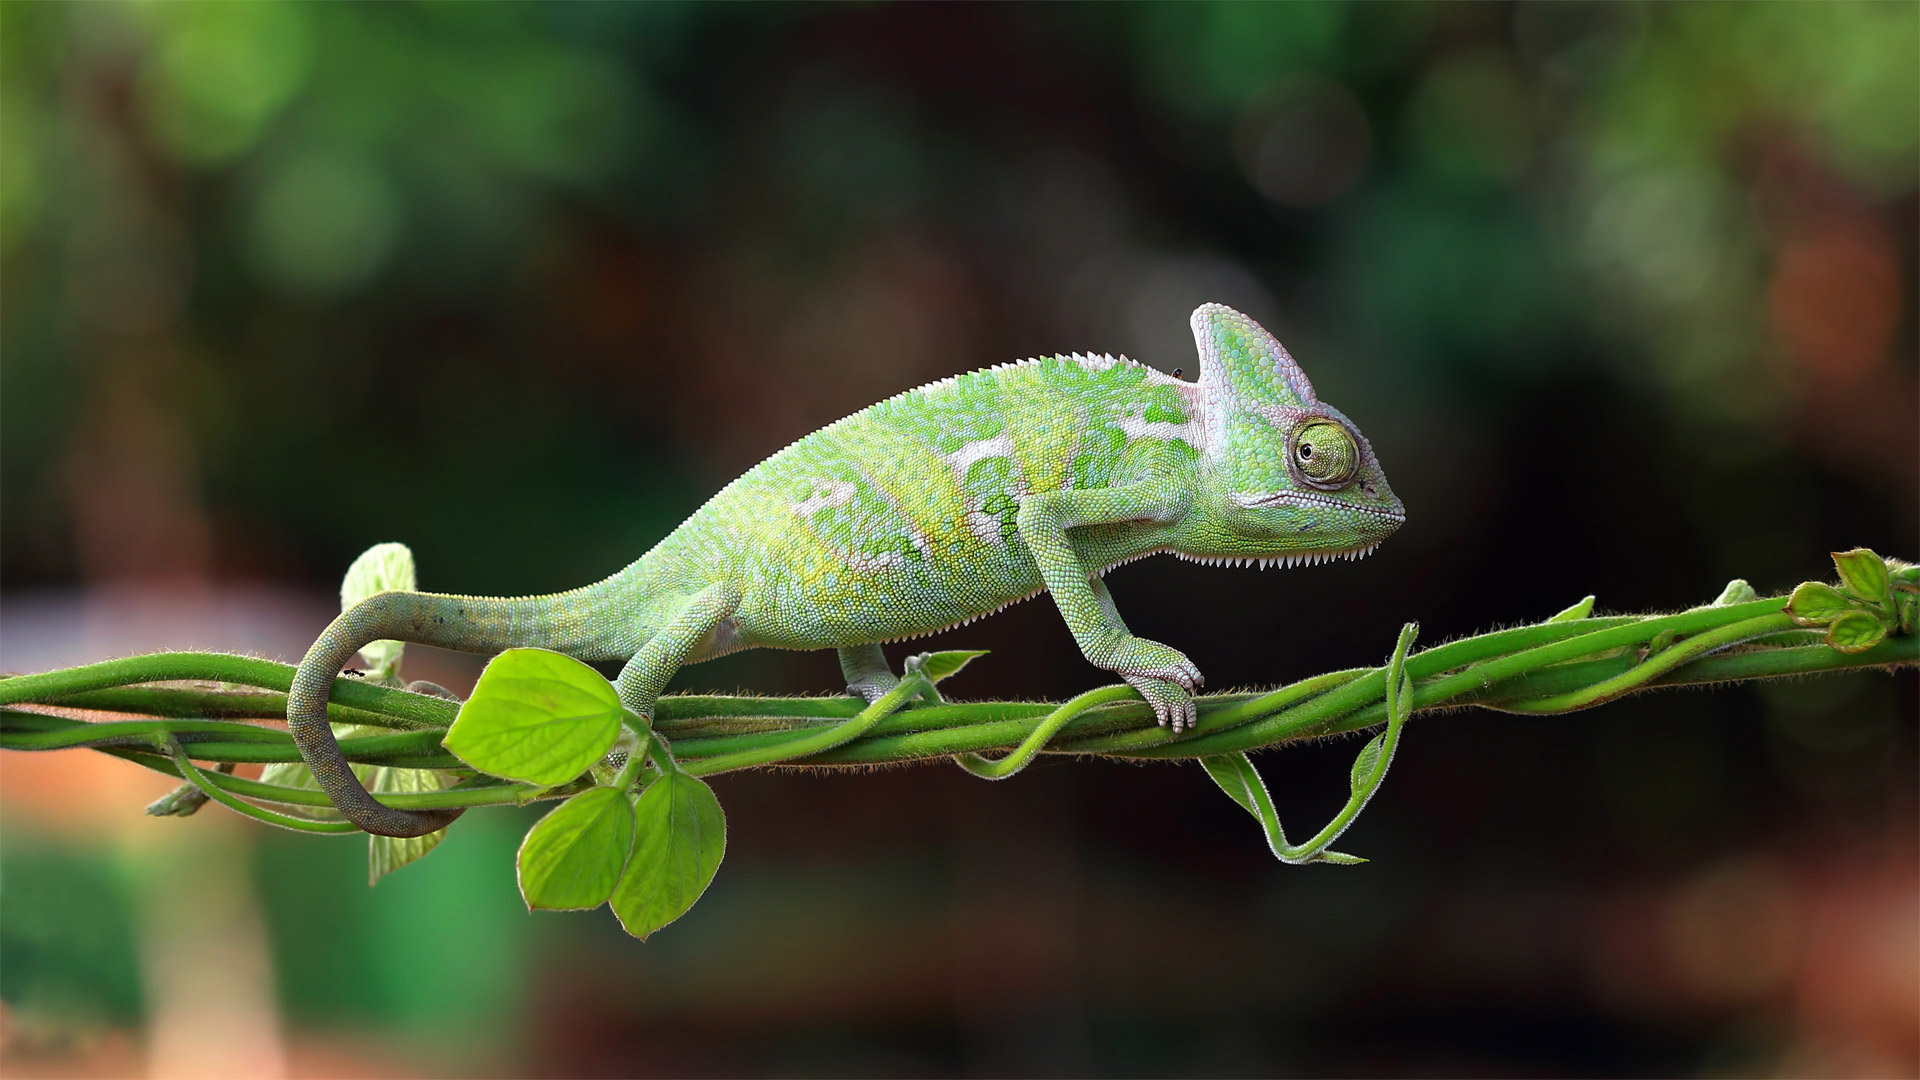 Chameleon walking on a plant, Indonesia (© SnapRapid/Offset by Shutterstock)(Bing United States)